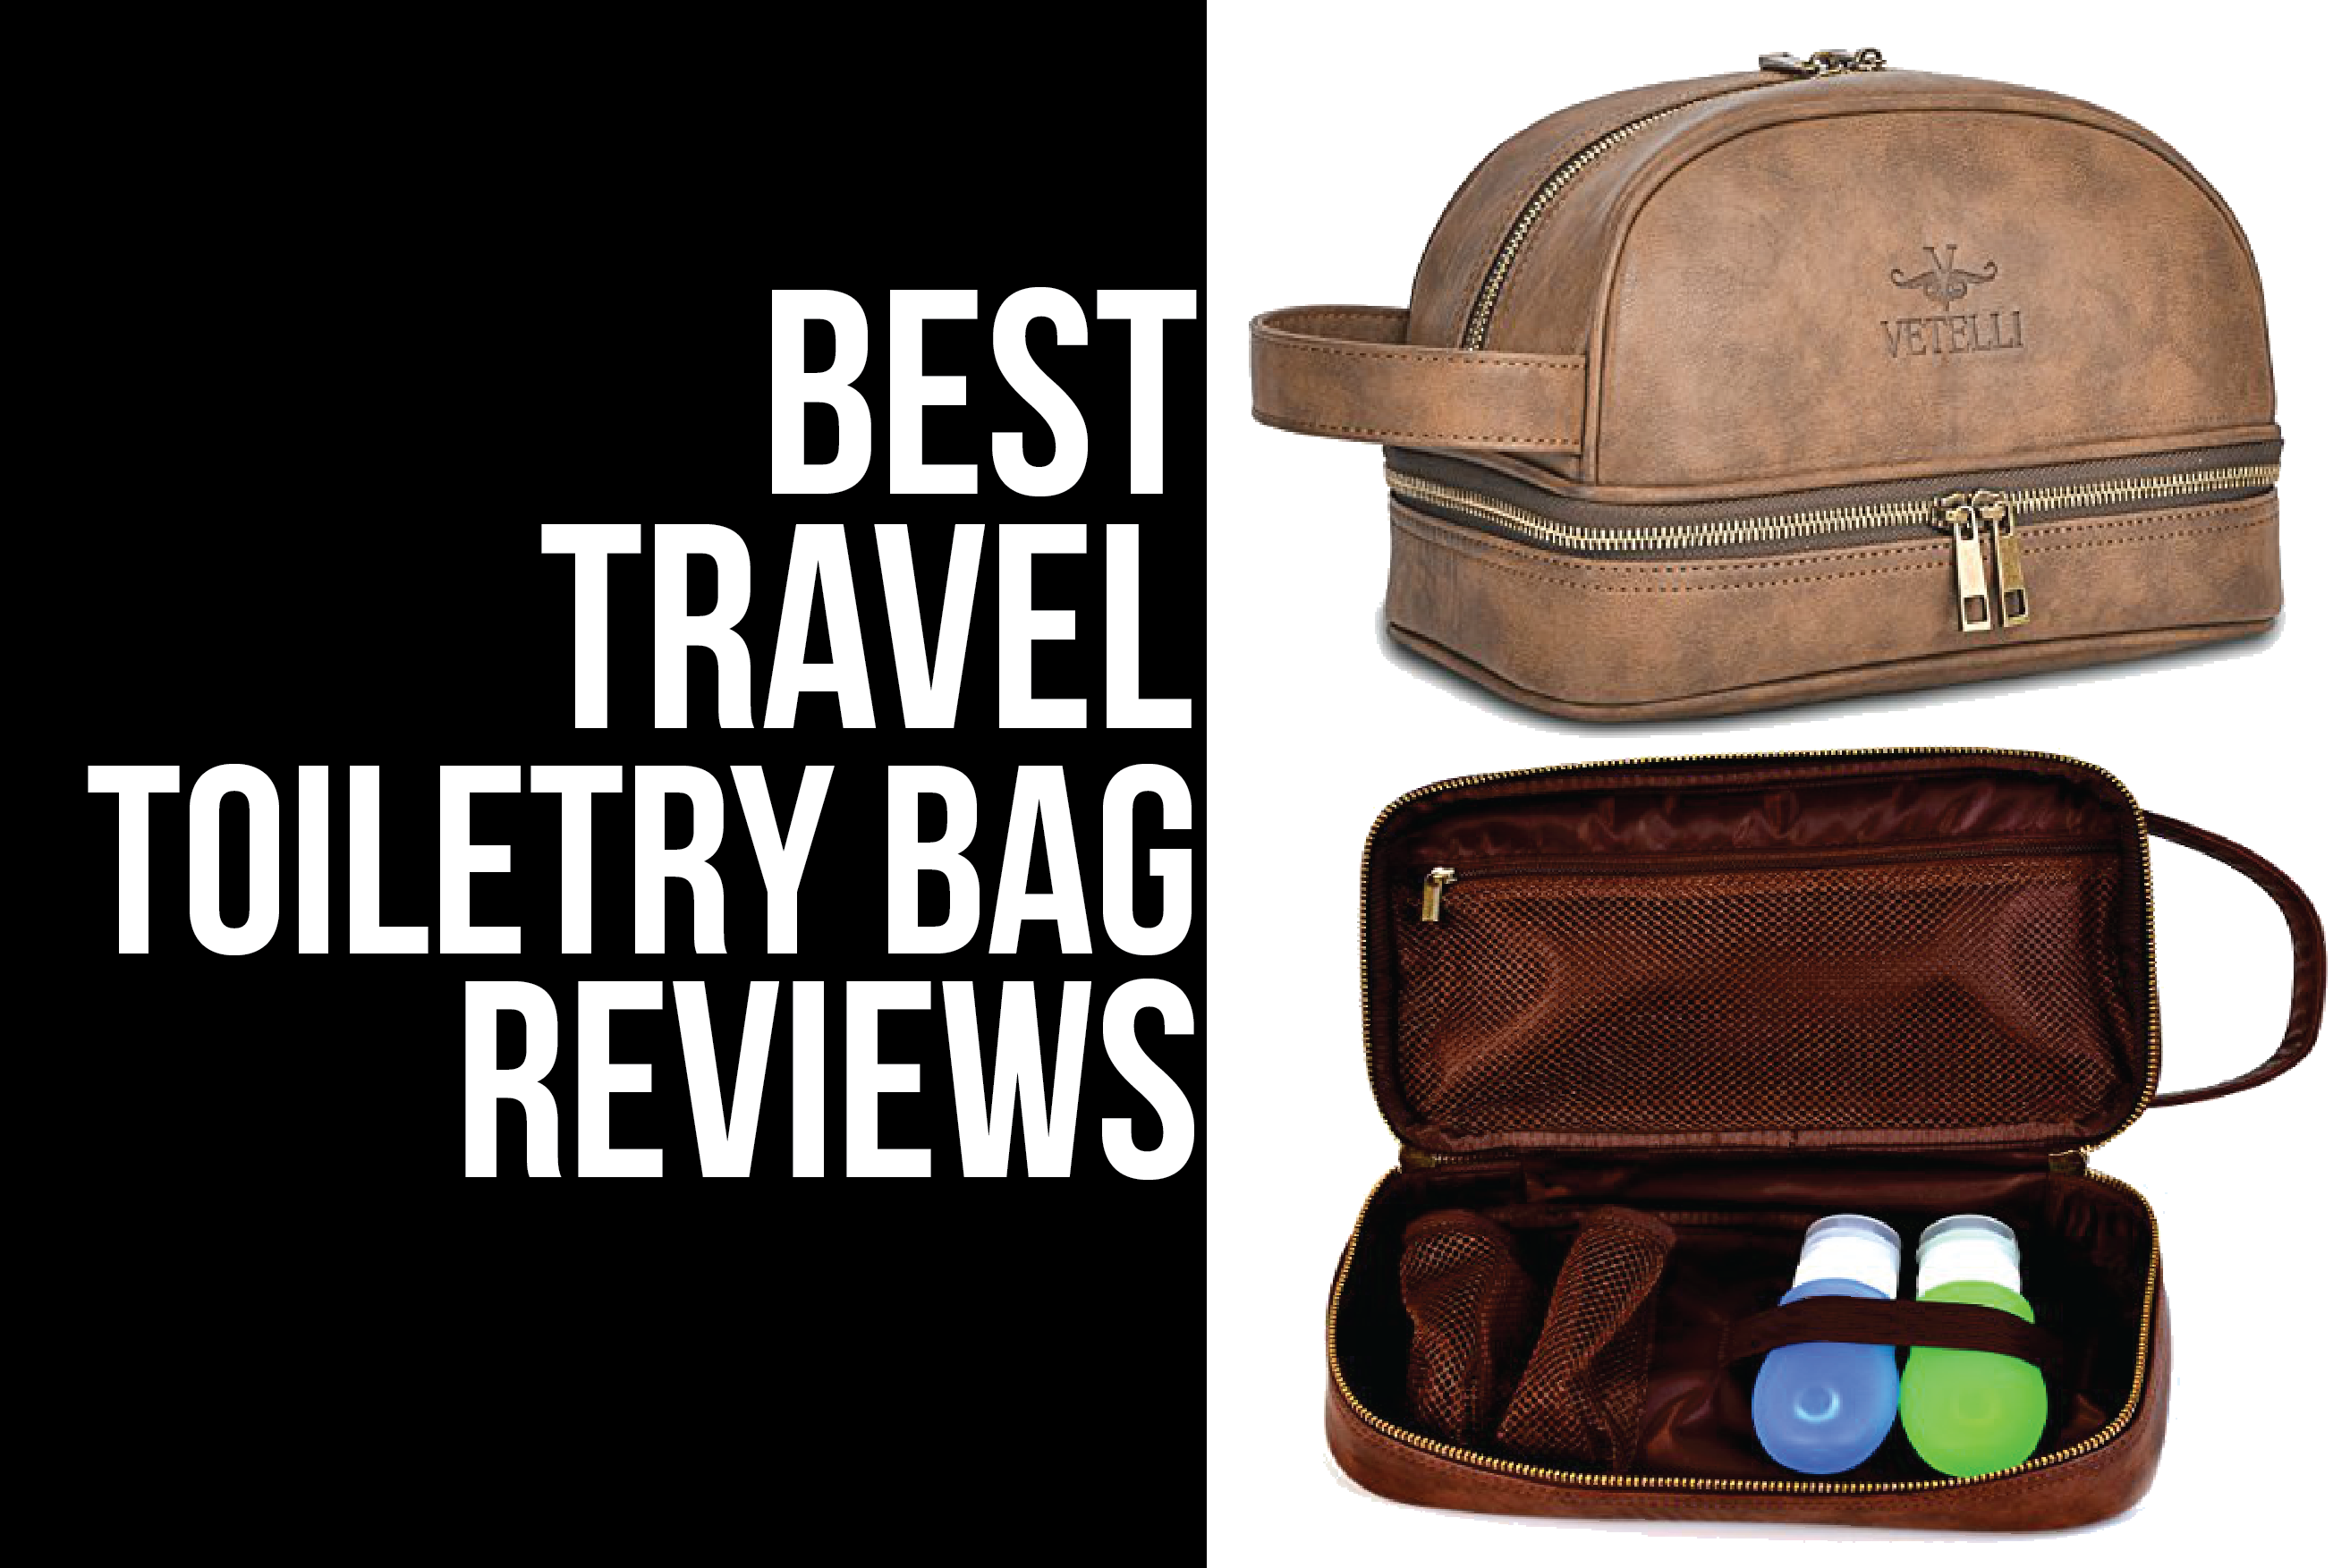 toiletry bag reviews